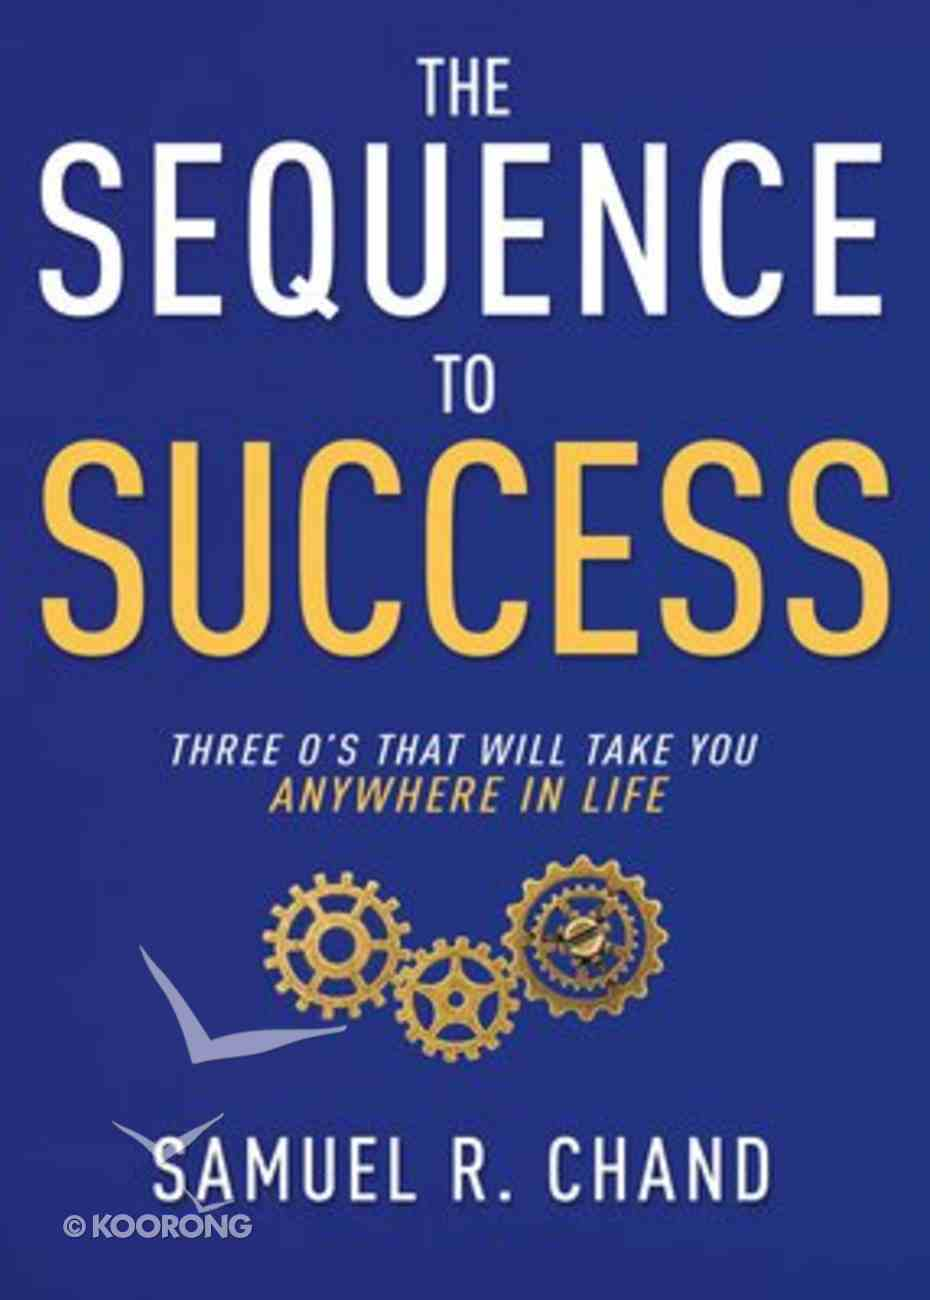 The Sequence to Success: Three O's That Will Take You Anywhere in Life Hardback